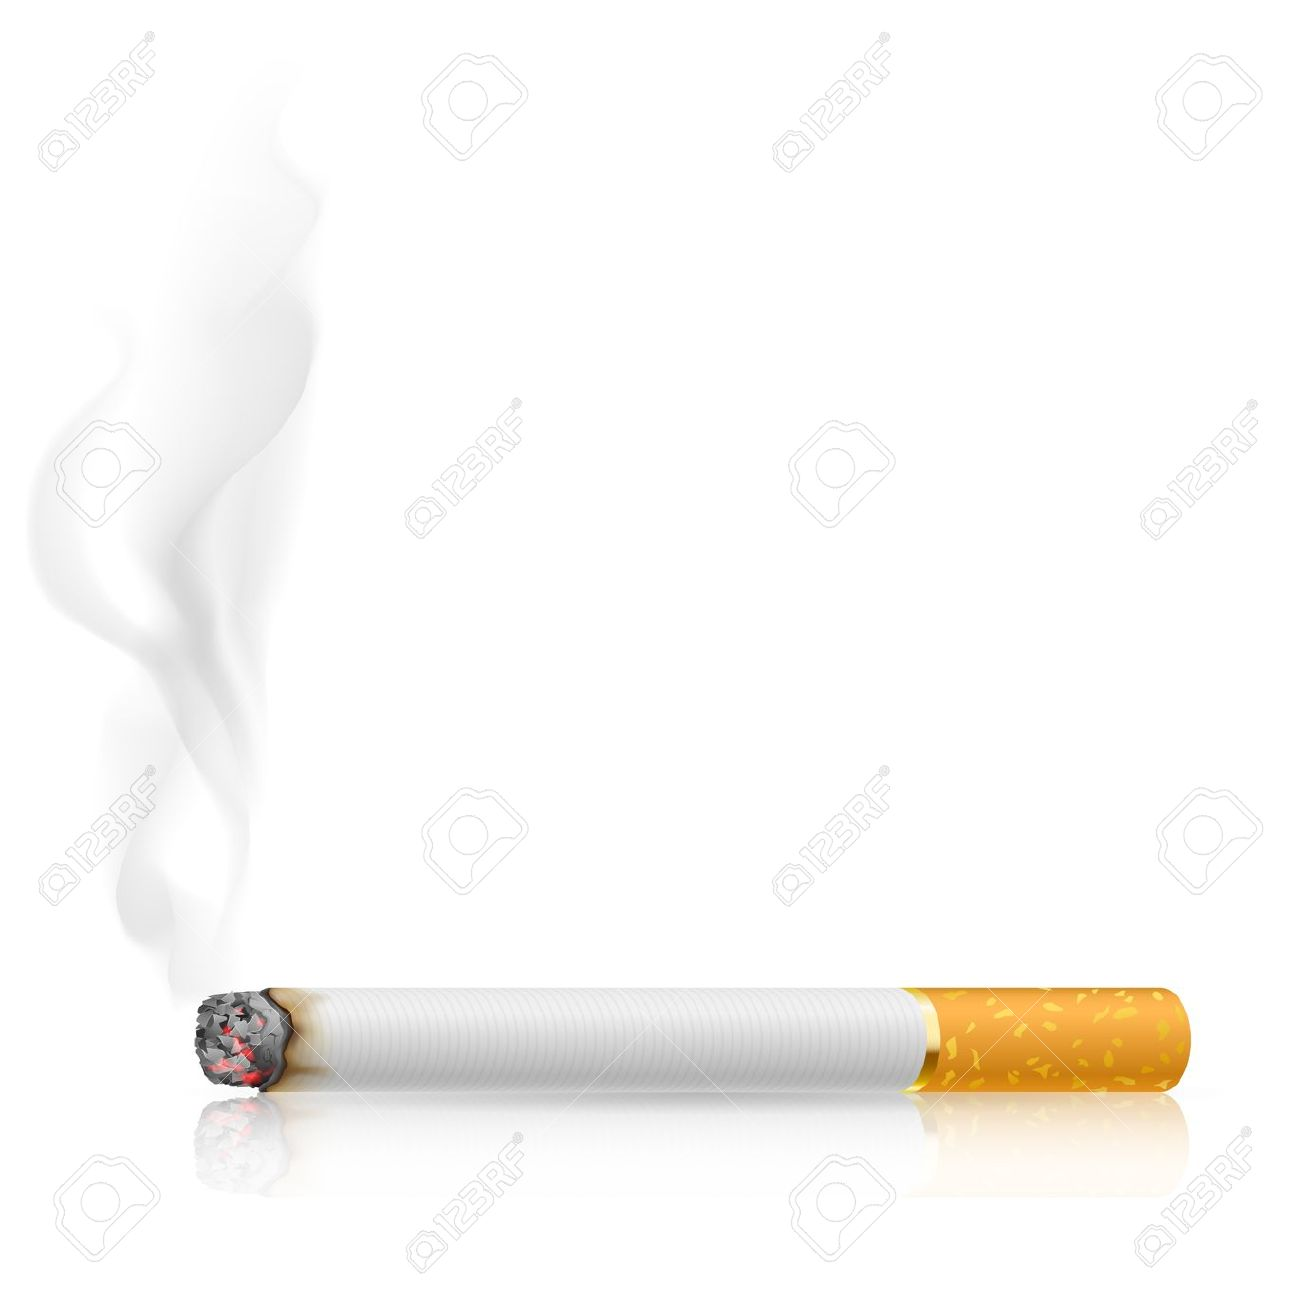 Cigarette clipart no background.